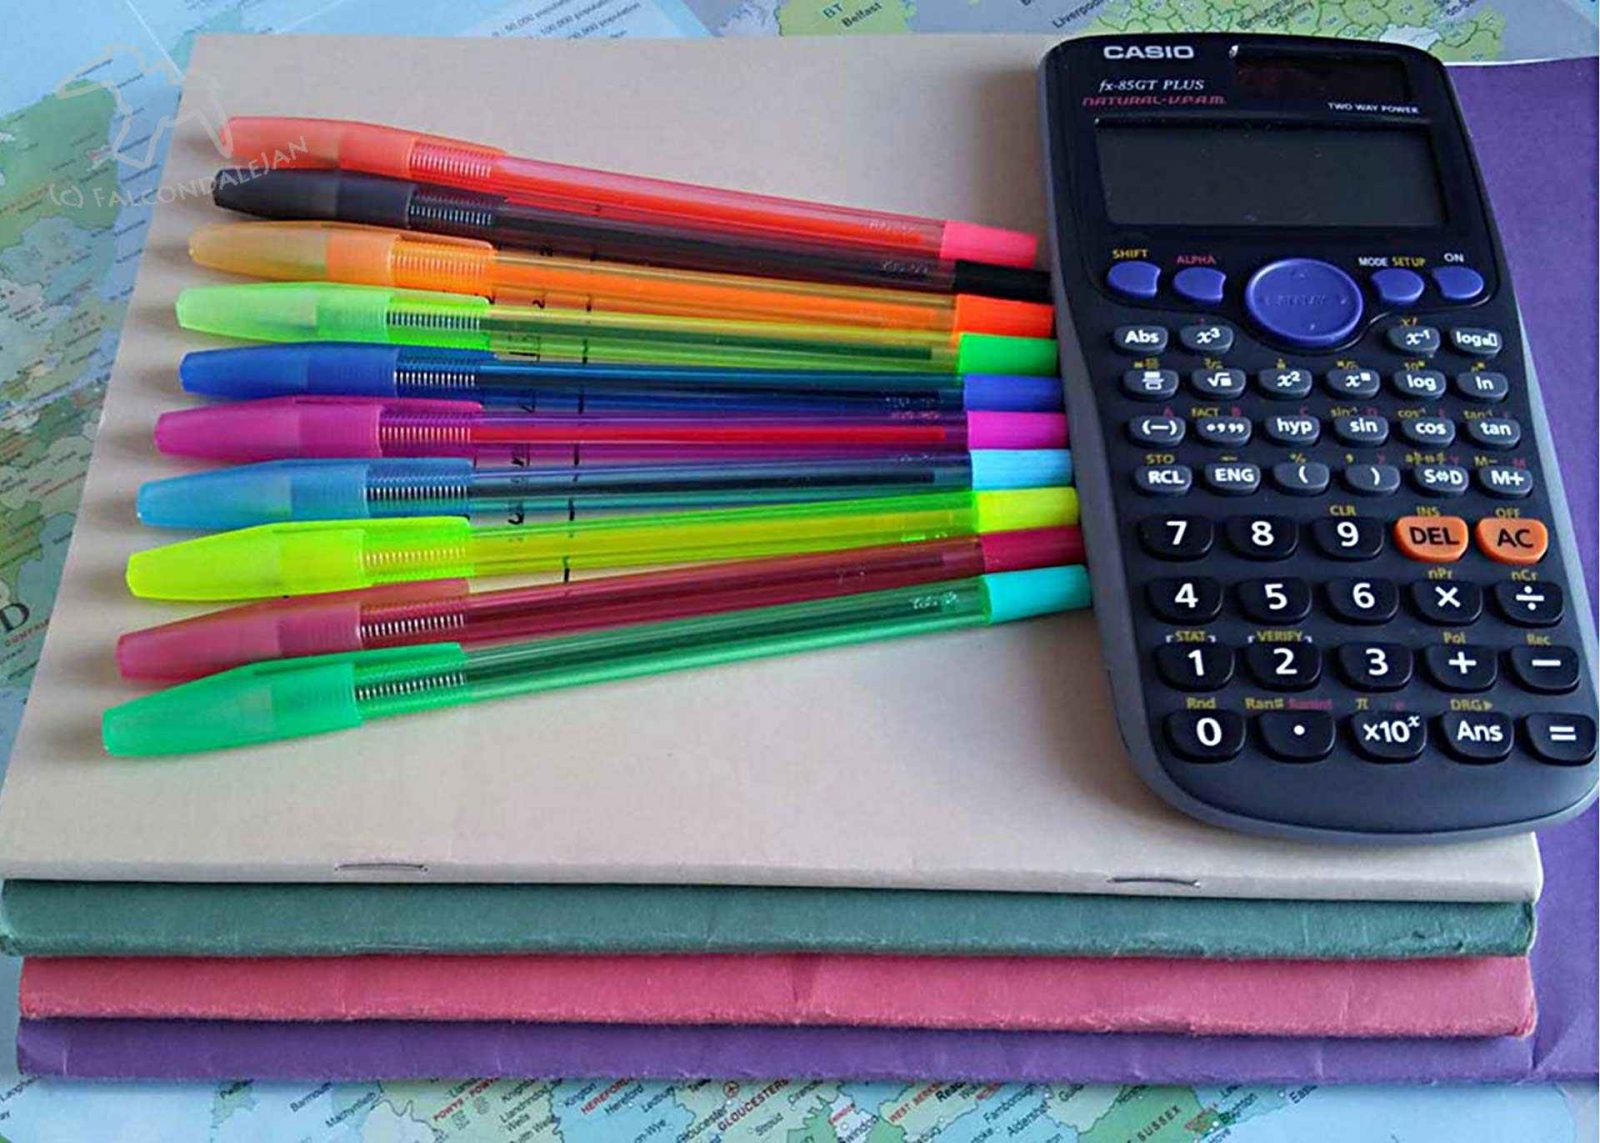 School supplies including pens, calculator, exercise books, atlas. Teens Taking GCSEs - What happens at the end of year 11? on Falcondale Life blog. Year 11 of secondary school ends with GCSE exams, lots of hard work and revision. Parents and teens want to know, will there be study leave, when do we find out the dates of the exams and when does school actually end? What is there to do after the end of year 11 in the long summer break? Tips from parent bloggers.